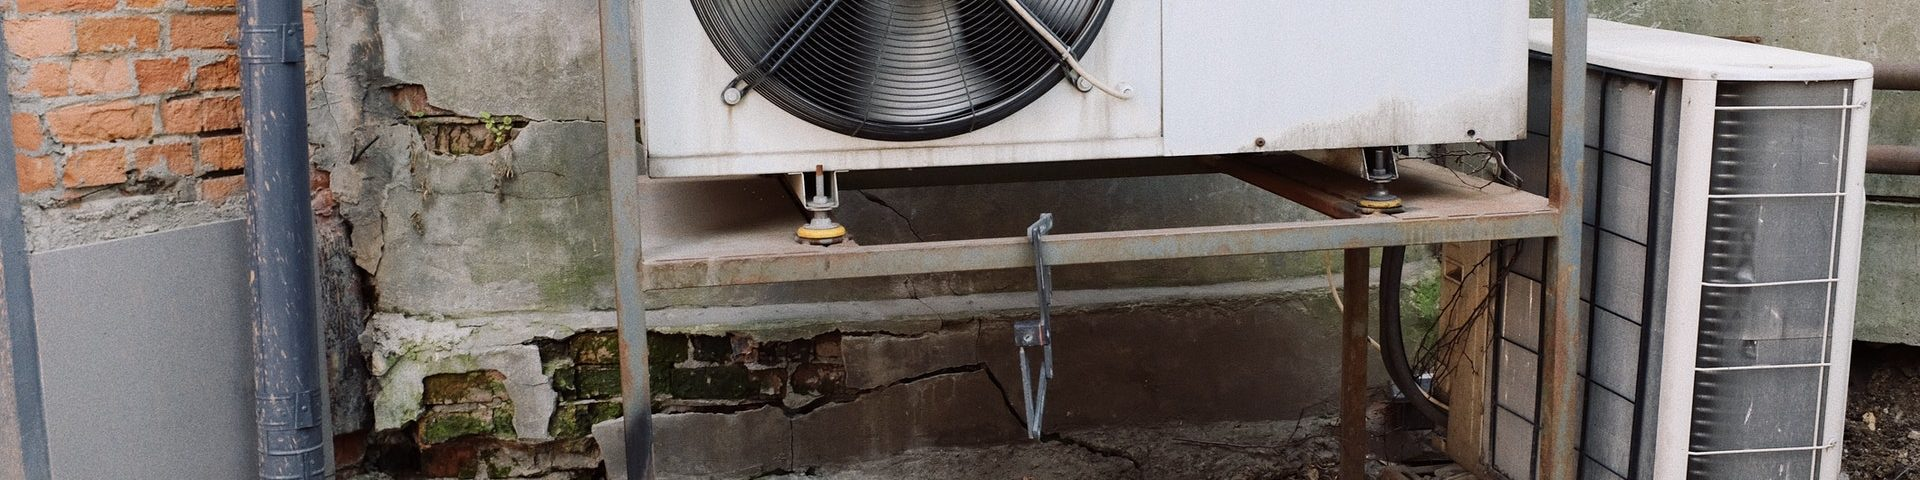 5 Care Tips for Keeping a Commercial HVAC Unit in Working Condition